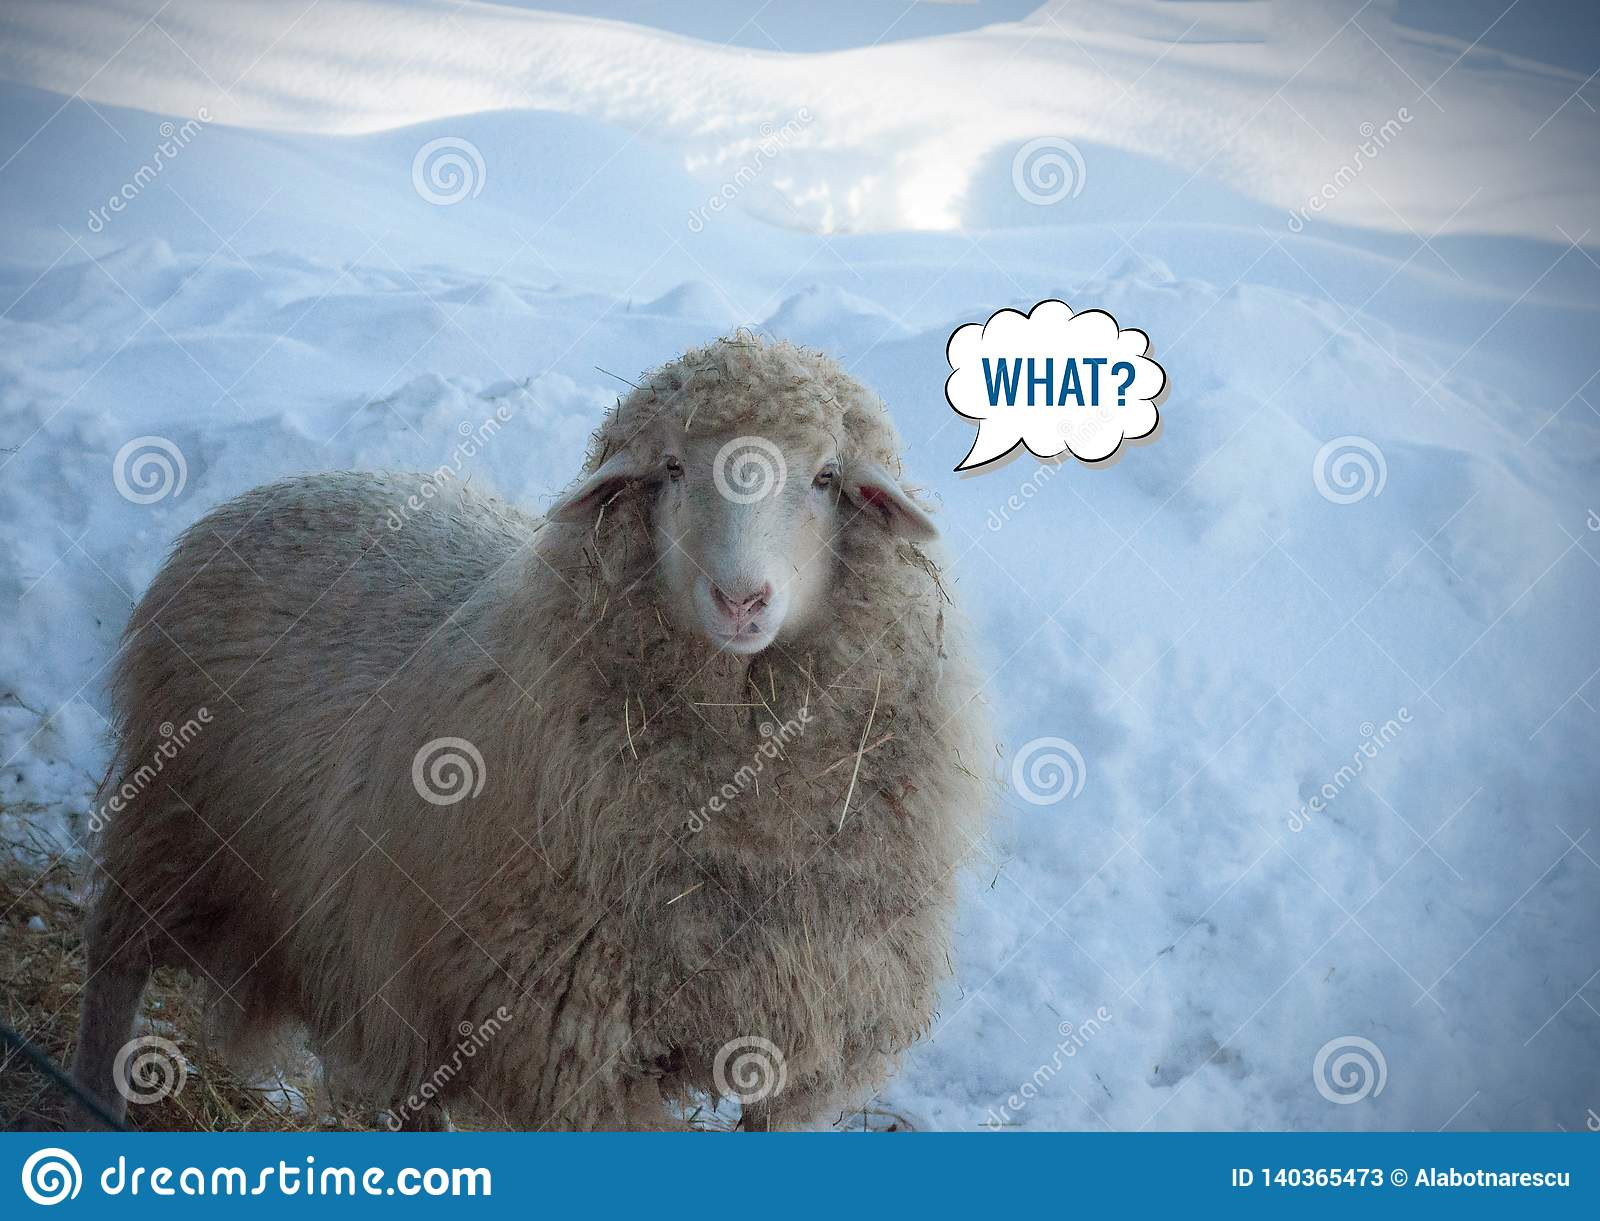 Close up view of a looking sheep in winter day. Looking cool sheep and `What?` message meme